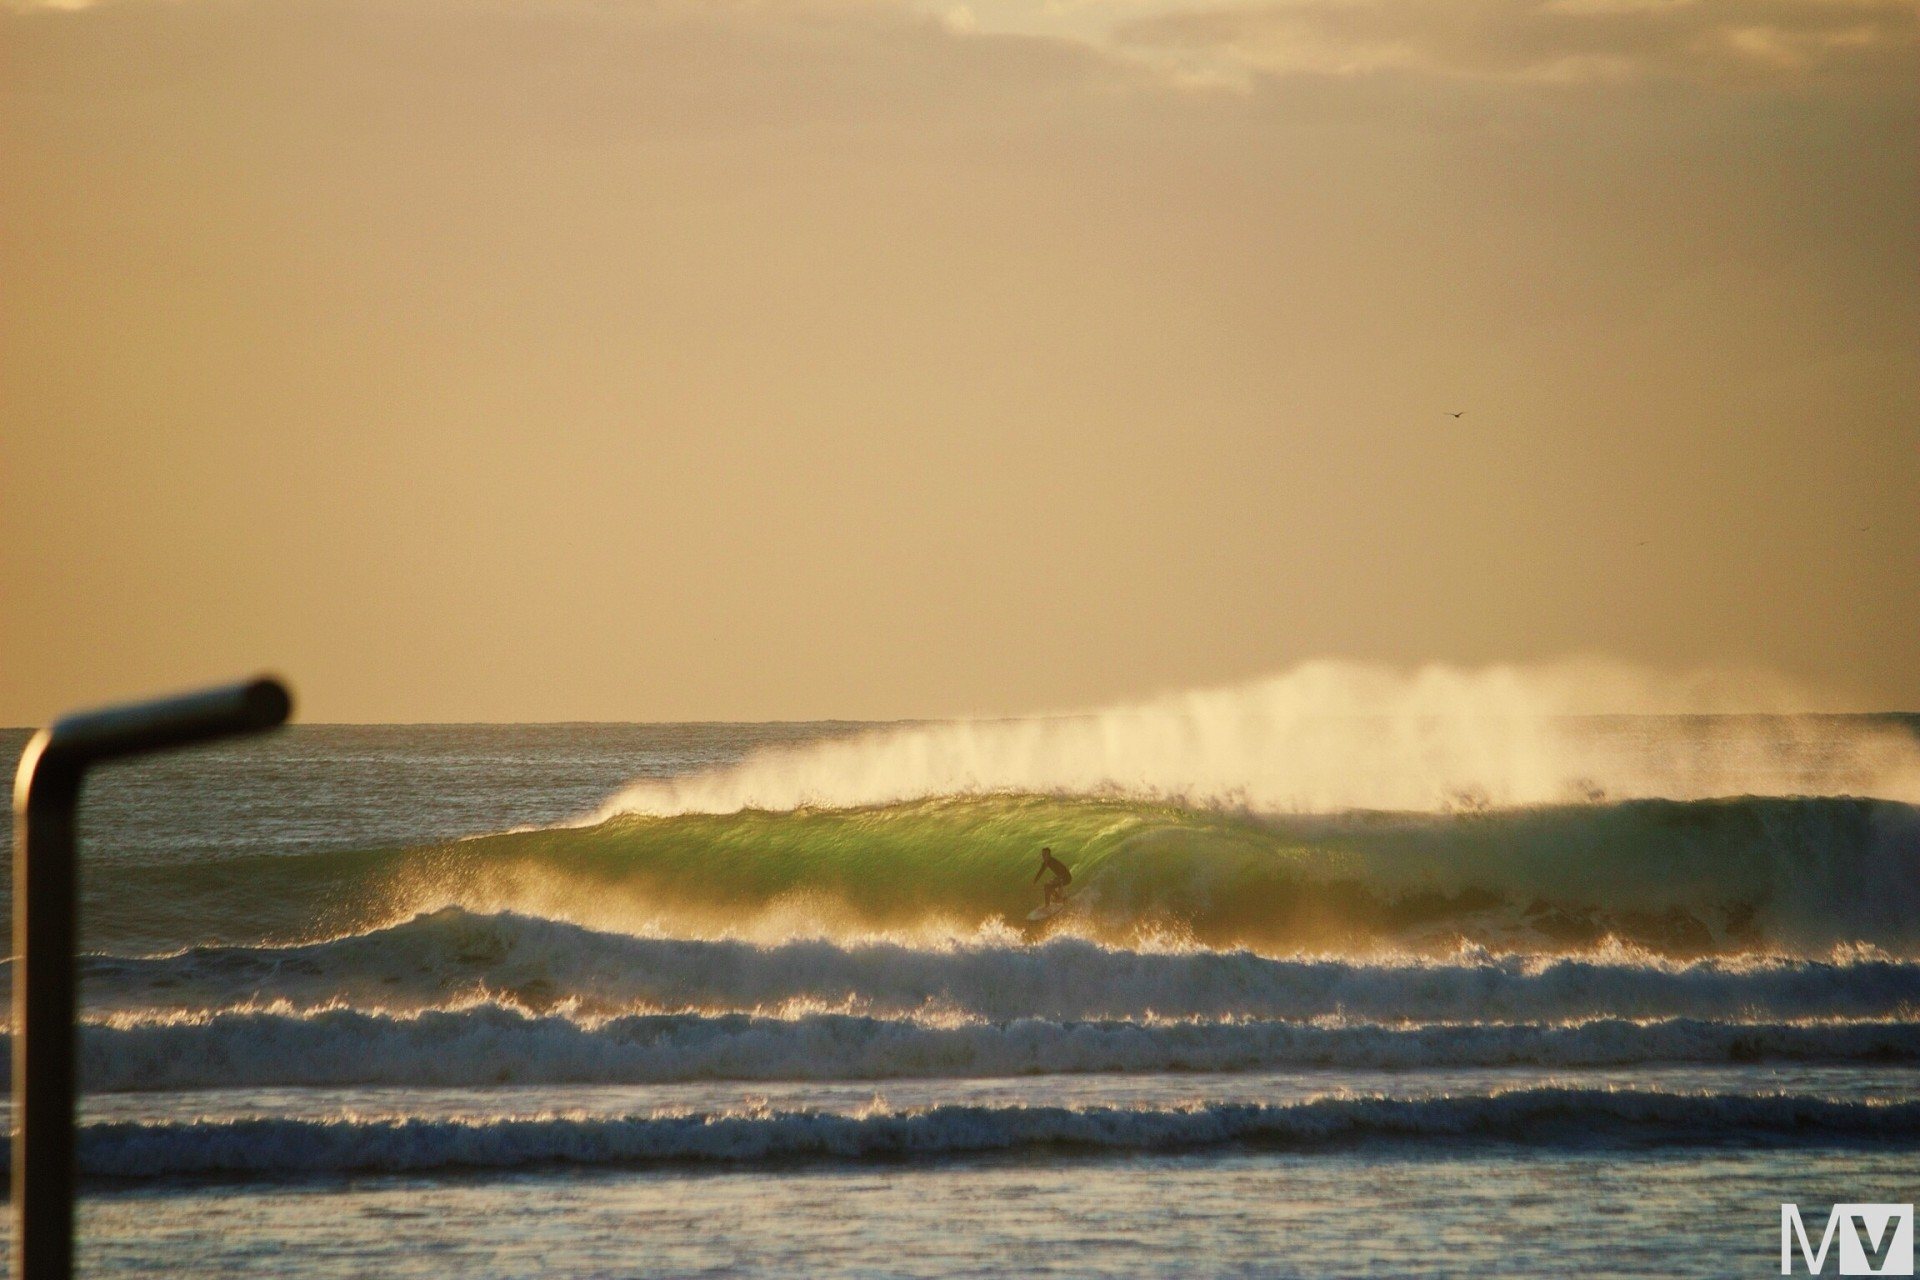 MikeV's photo of Durban